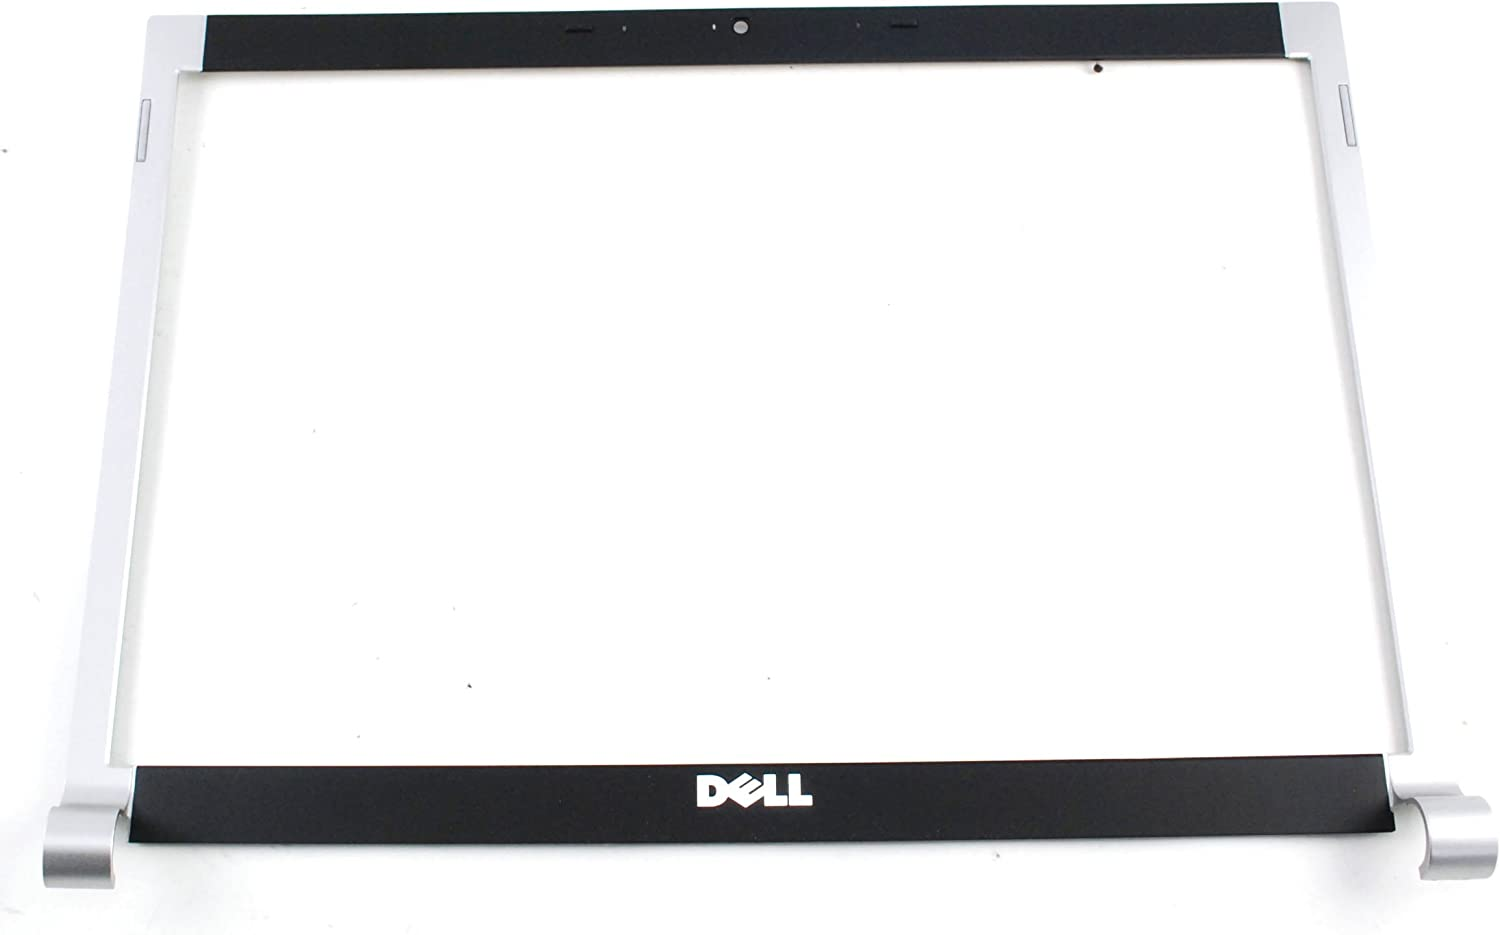 HT898 - New Dell XPS M1530 15.4